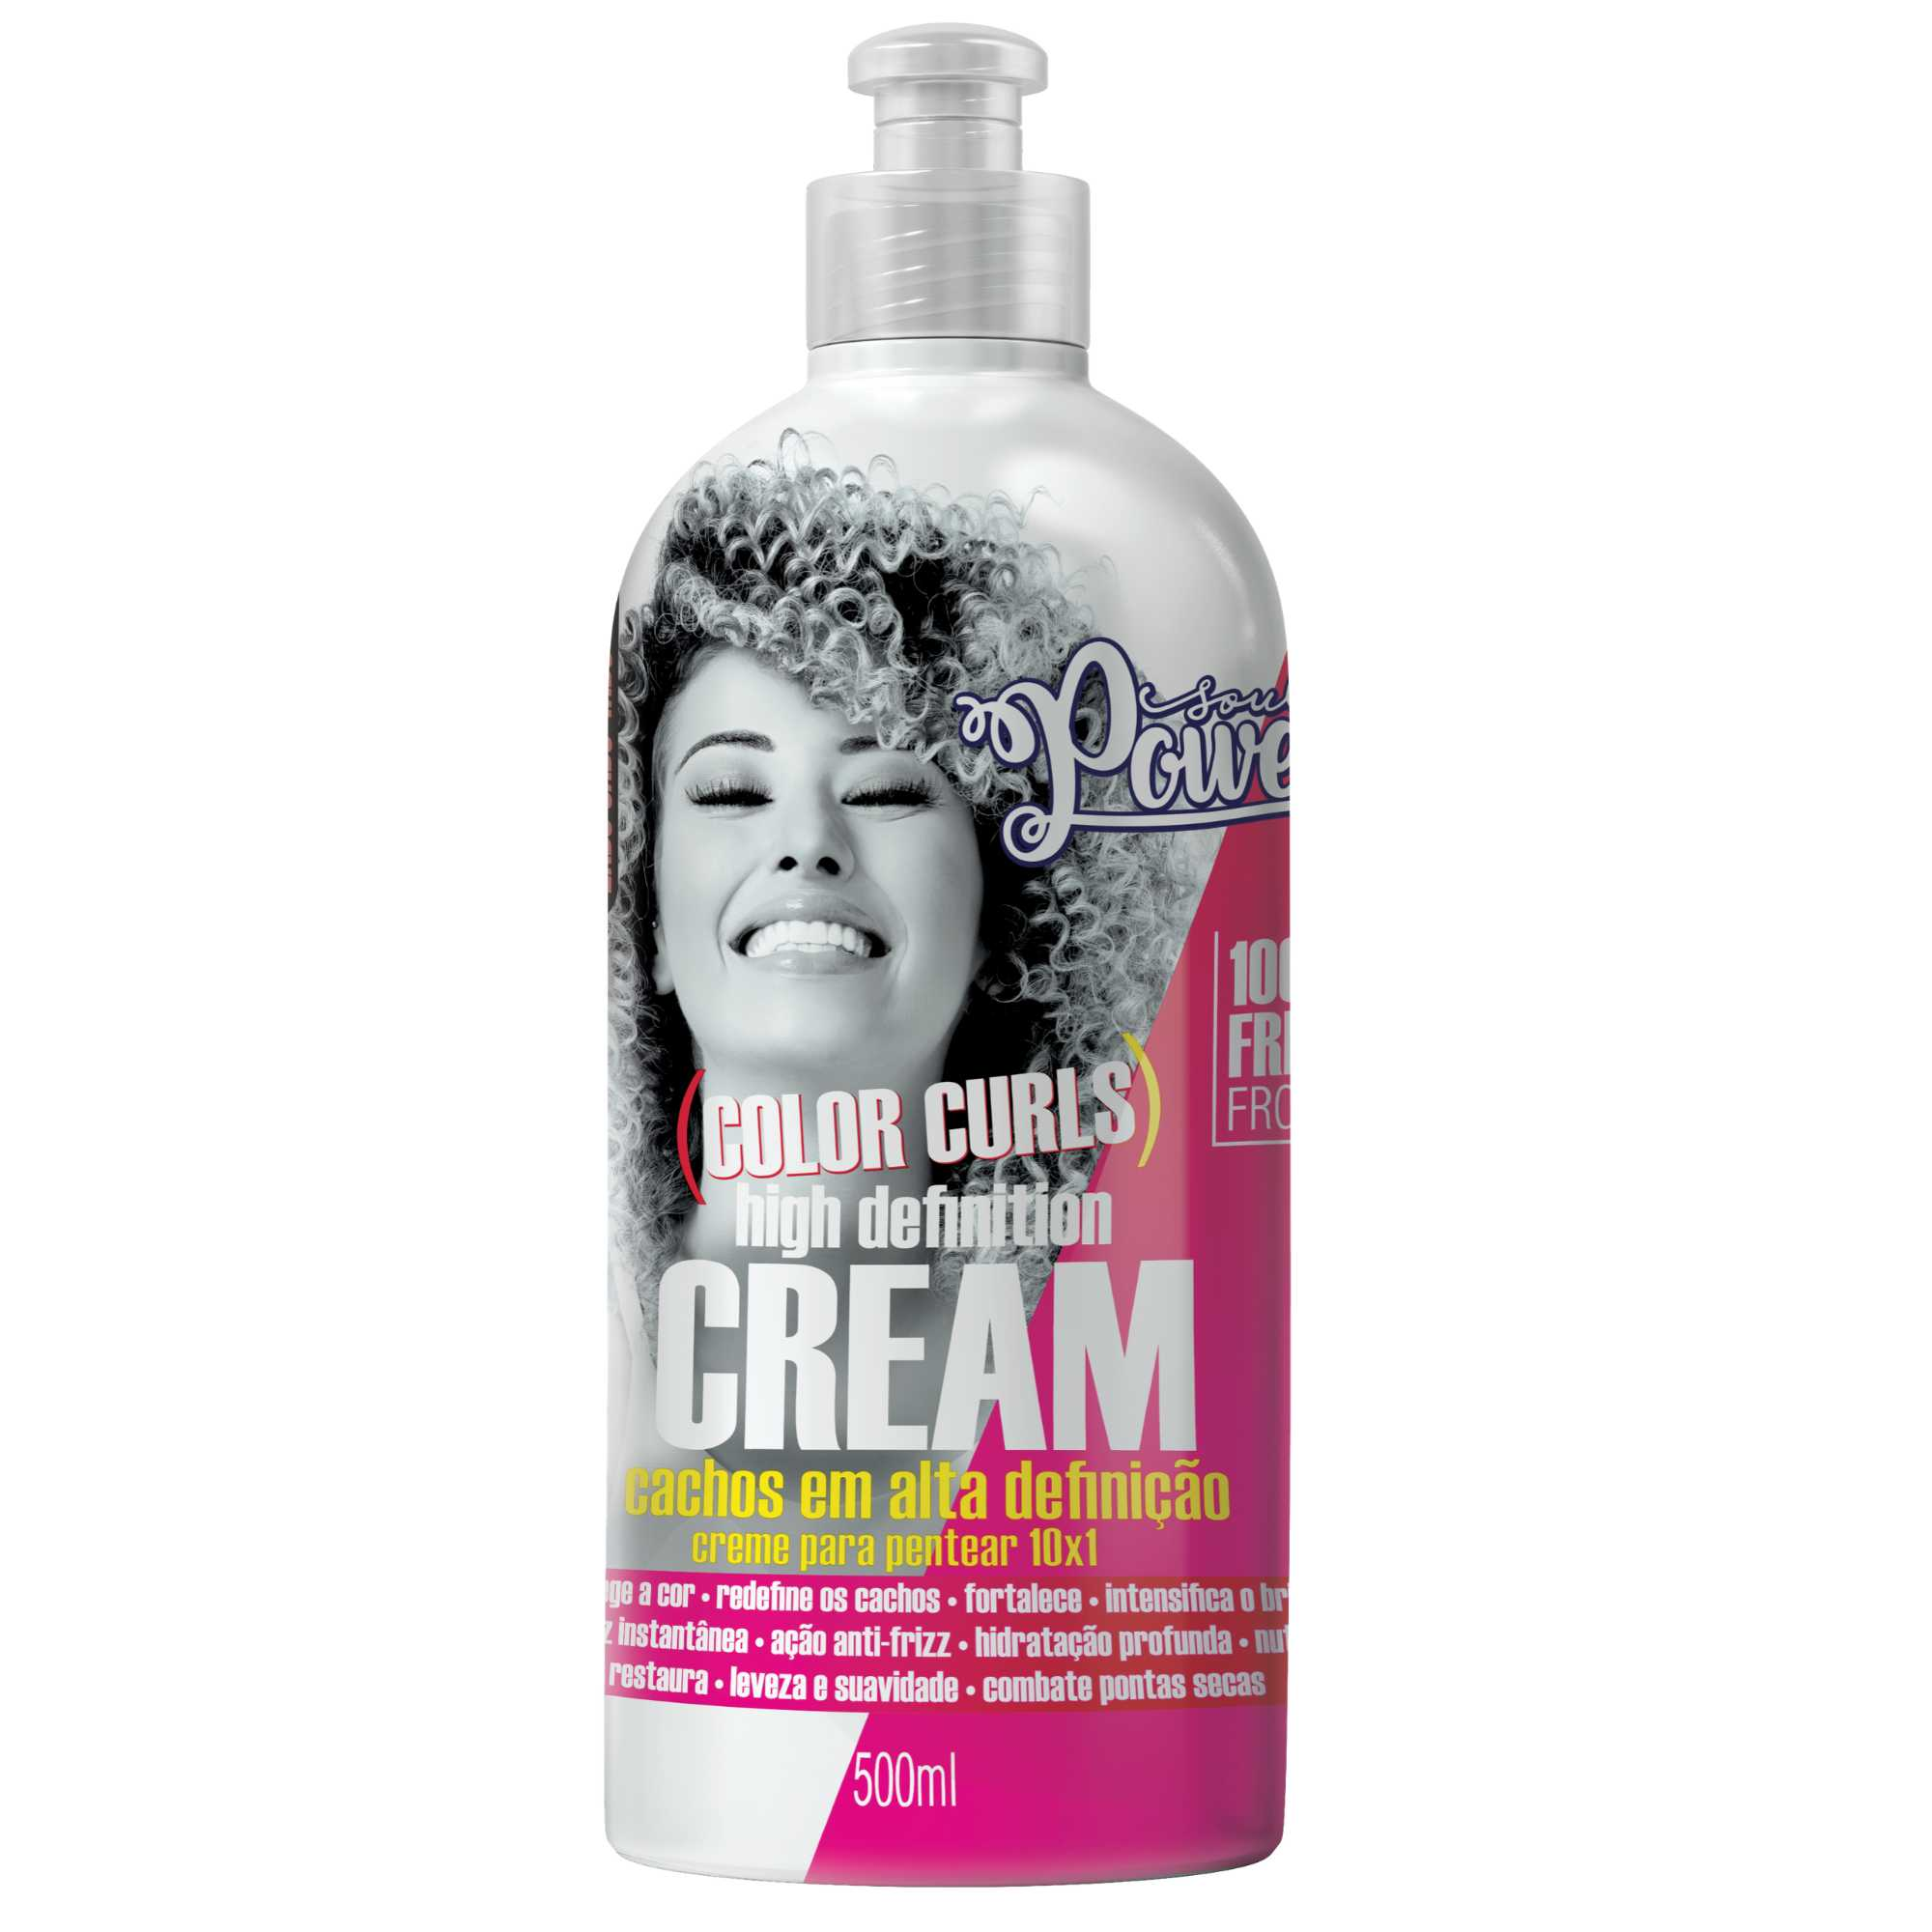 CREME PENTEAR CURLY HIGH DEFINITION - SOUL POWER 500ML